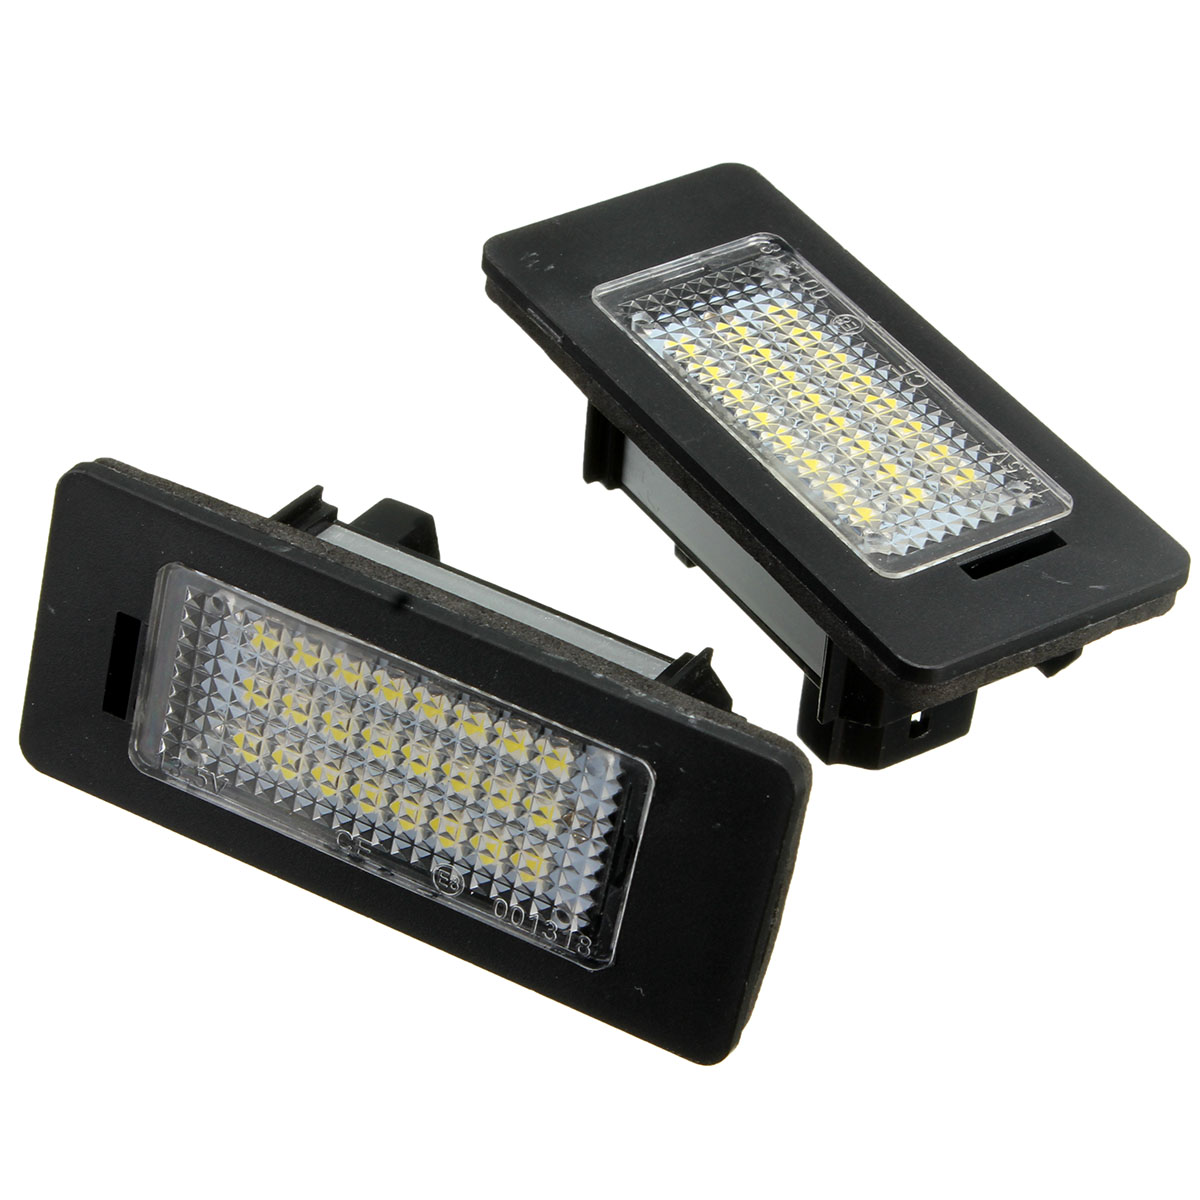 2Pcs 24 LED White License Plate Light Number Lamp For BMW E81 E82 E90 E91 E92 E93 E60 E61 E39 X1/E84 E-marked OBC Error Free image